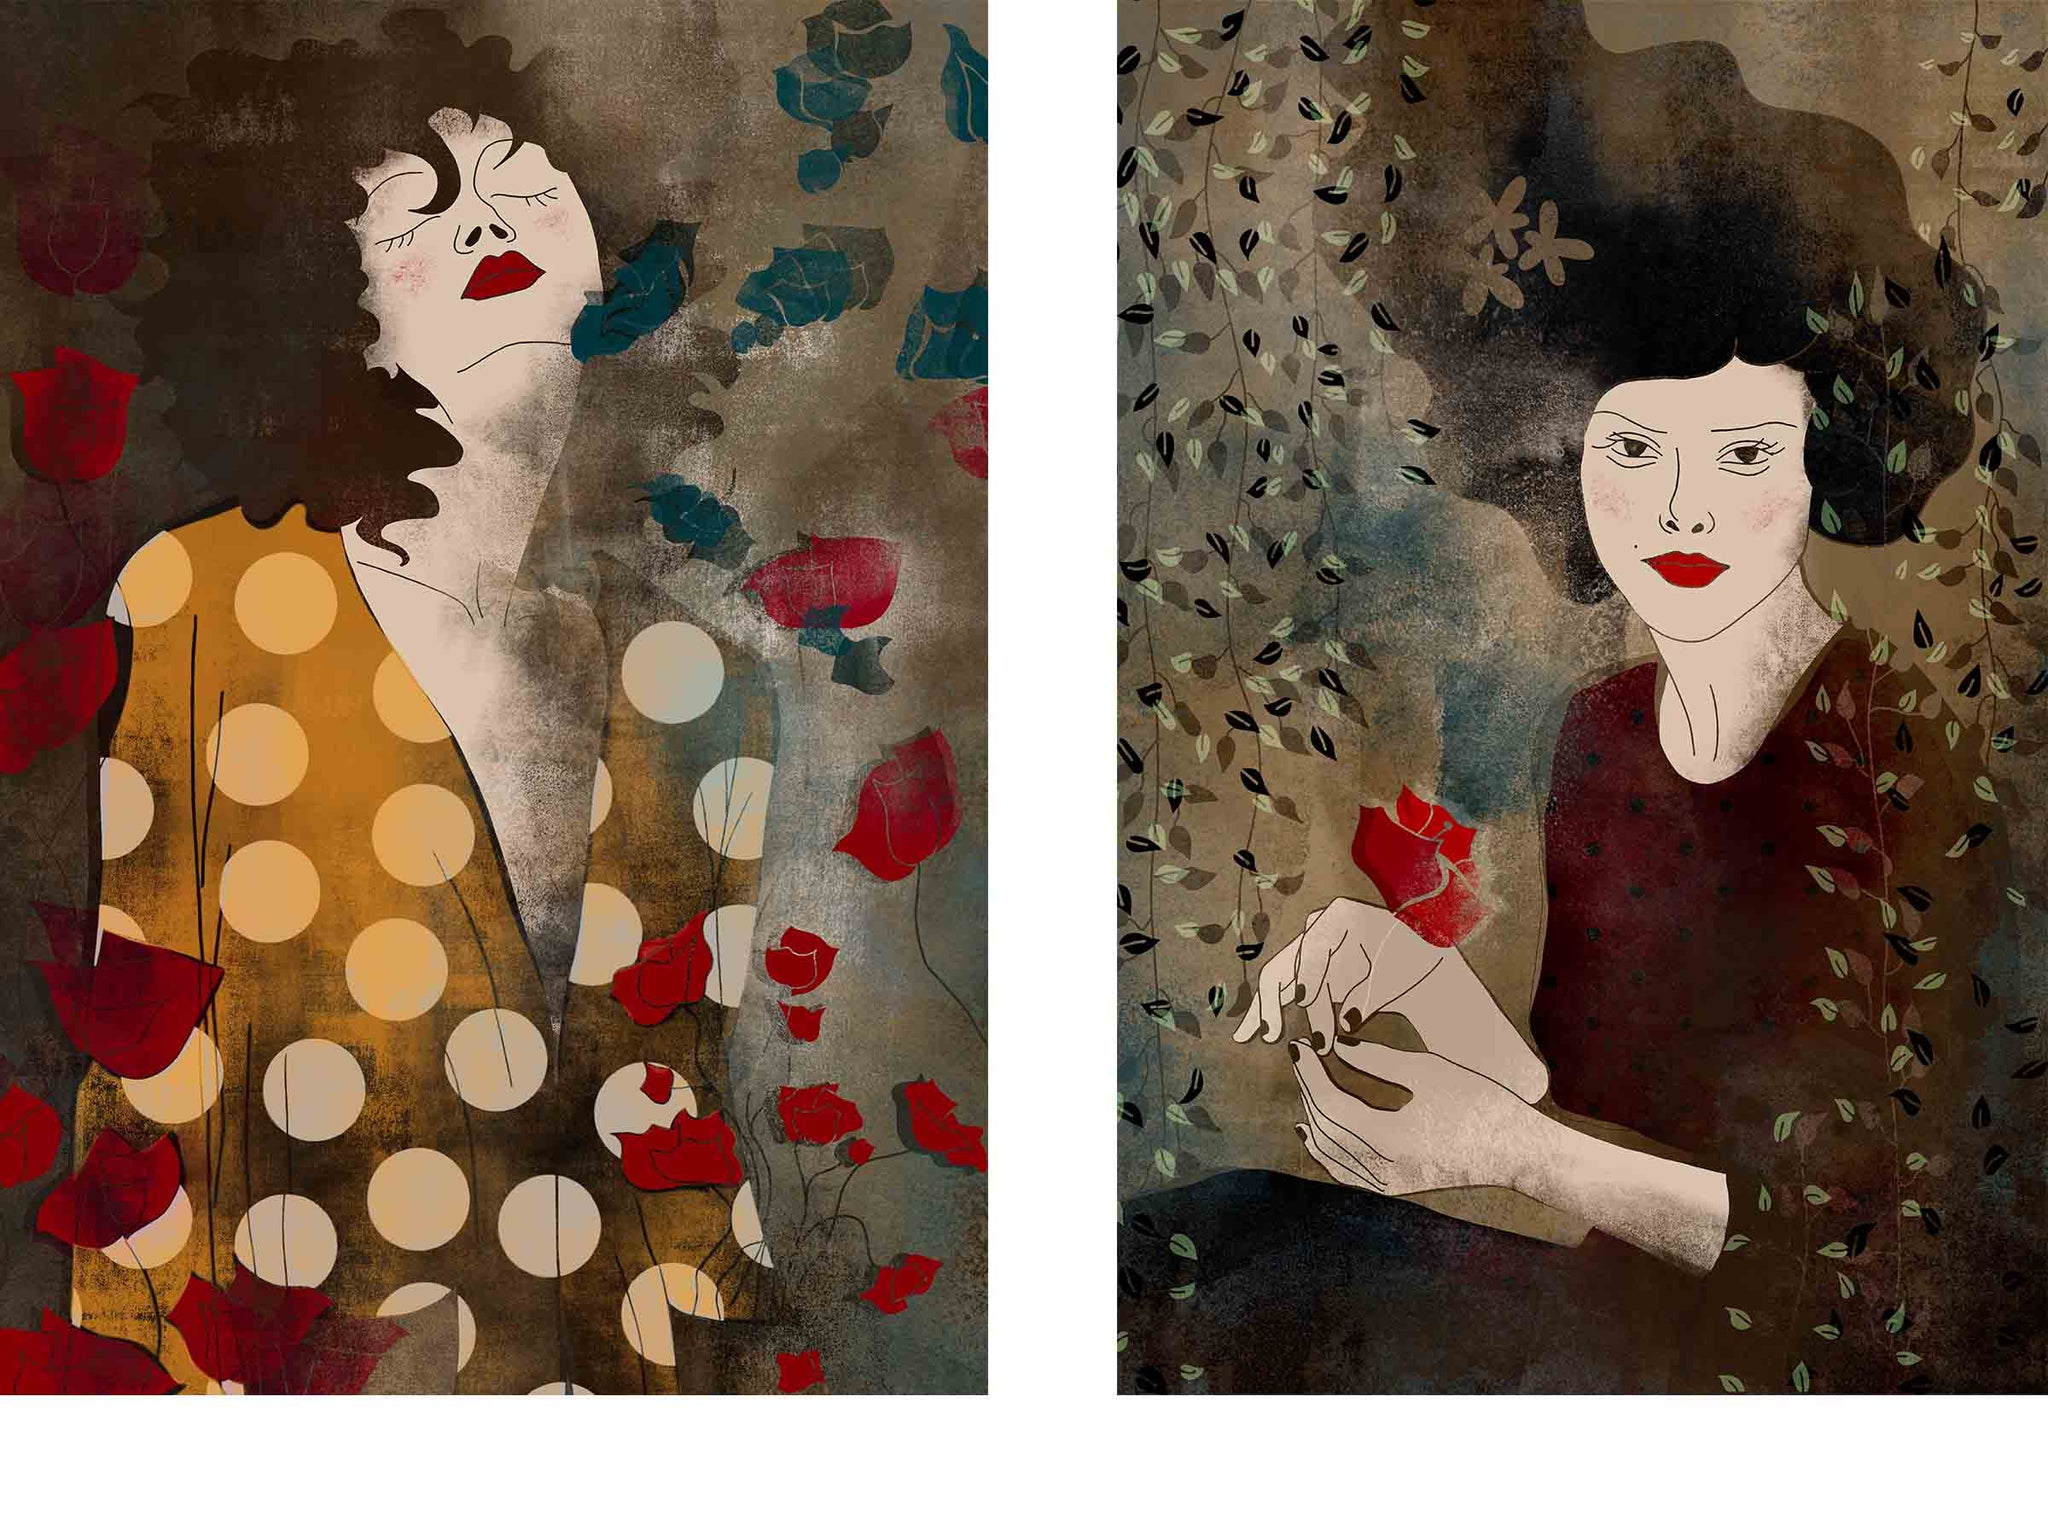 two separate stylized illustrated female portraits, both surrounded with flowers, both in some kind of an ecstasy